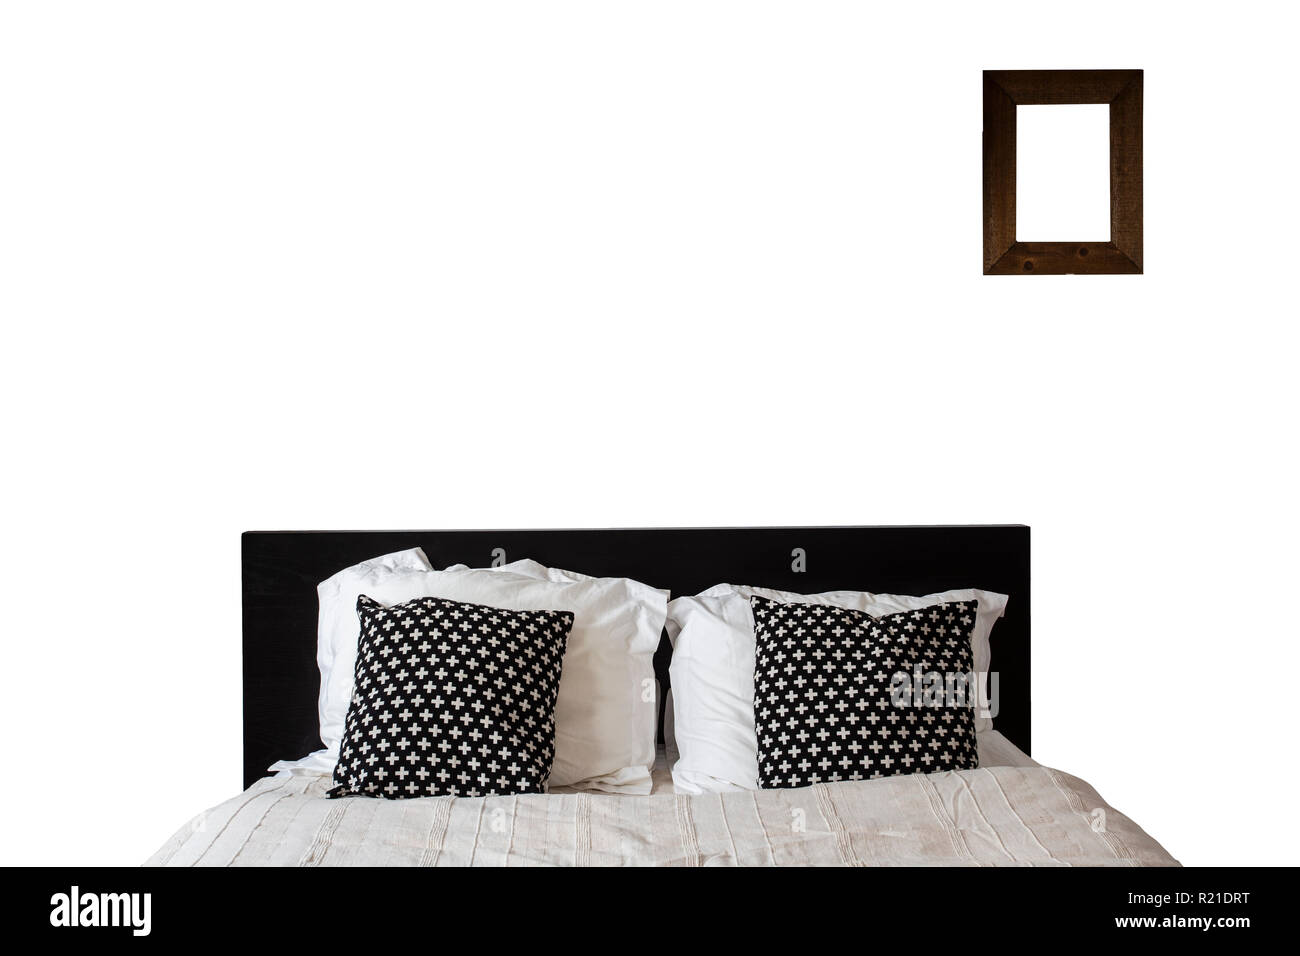 Bed with empty frame Isolated on White Background. Queen -Size ...